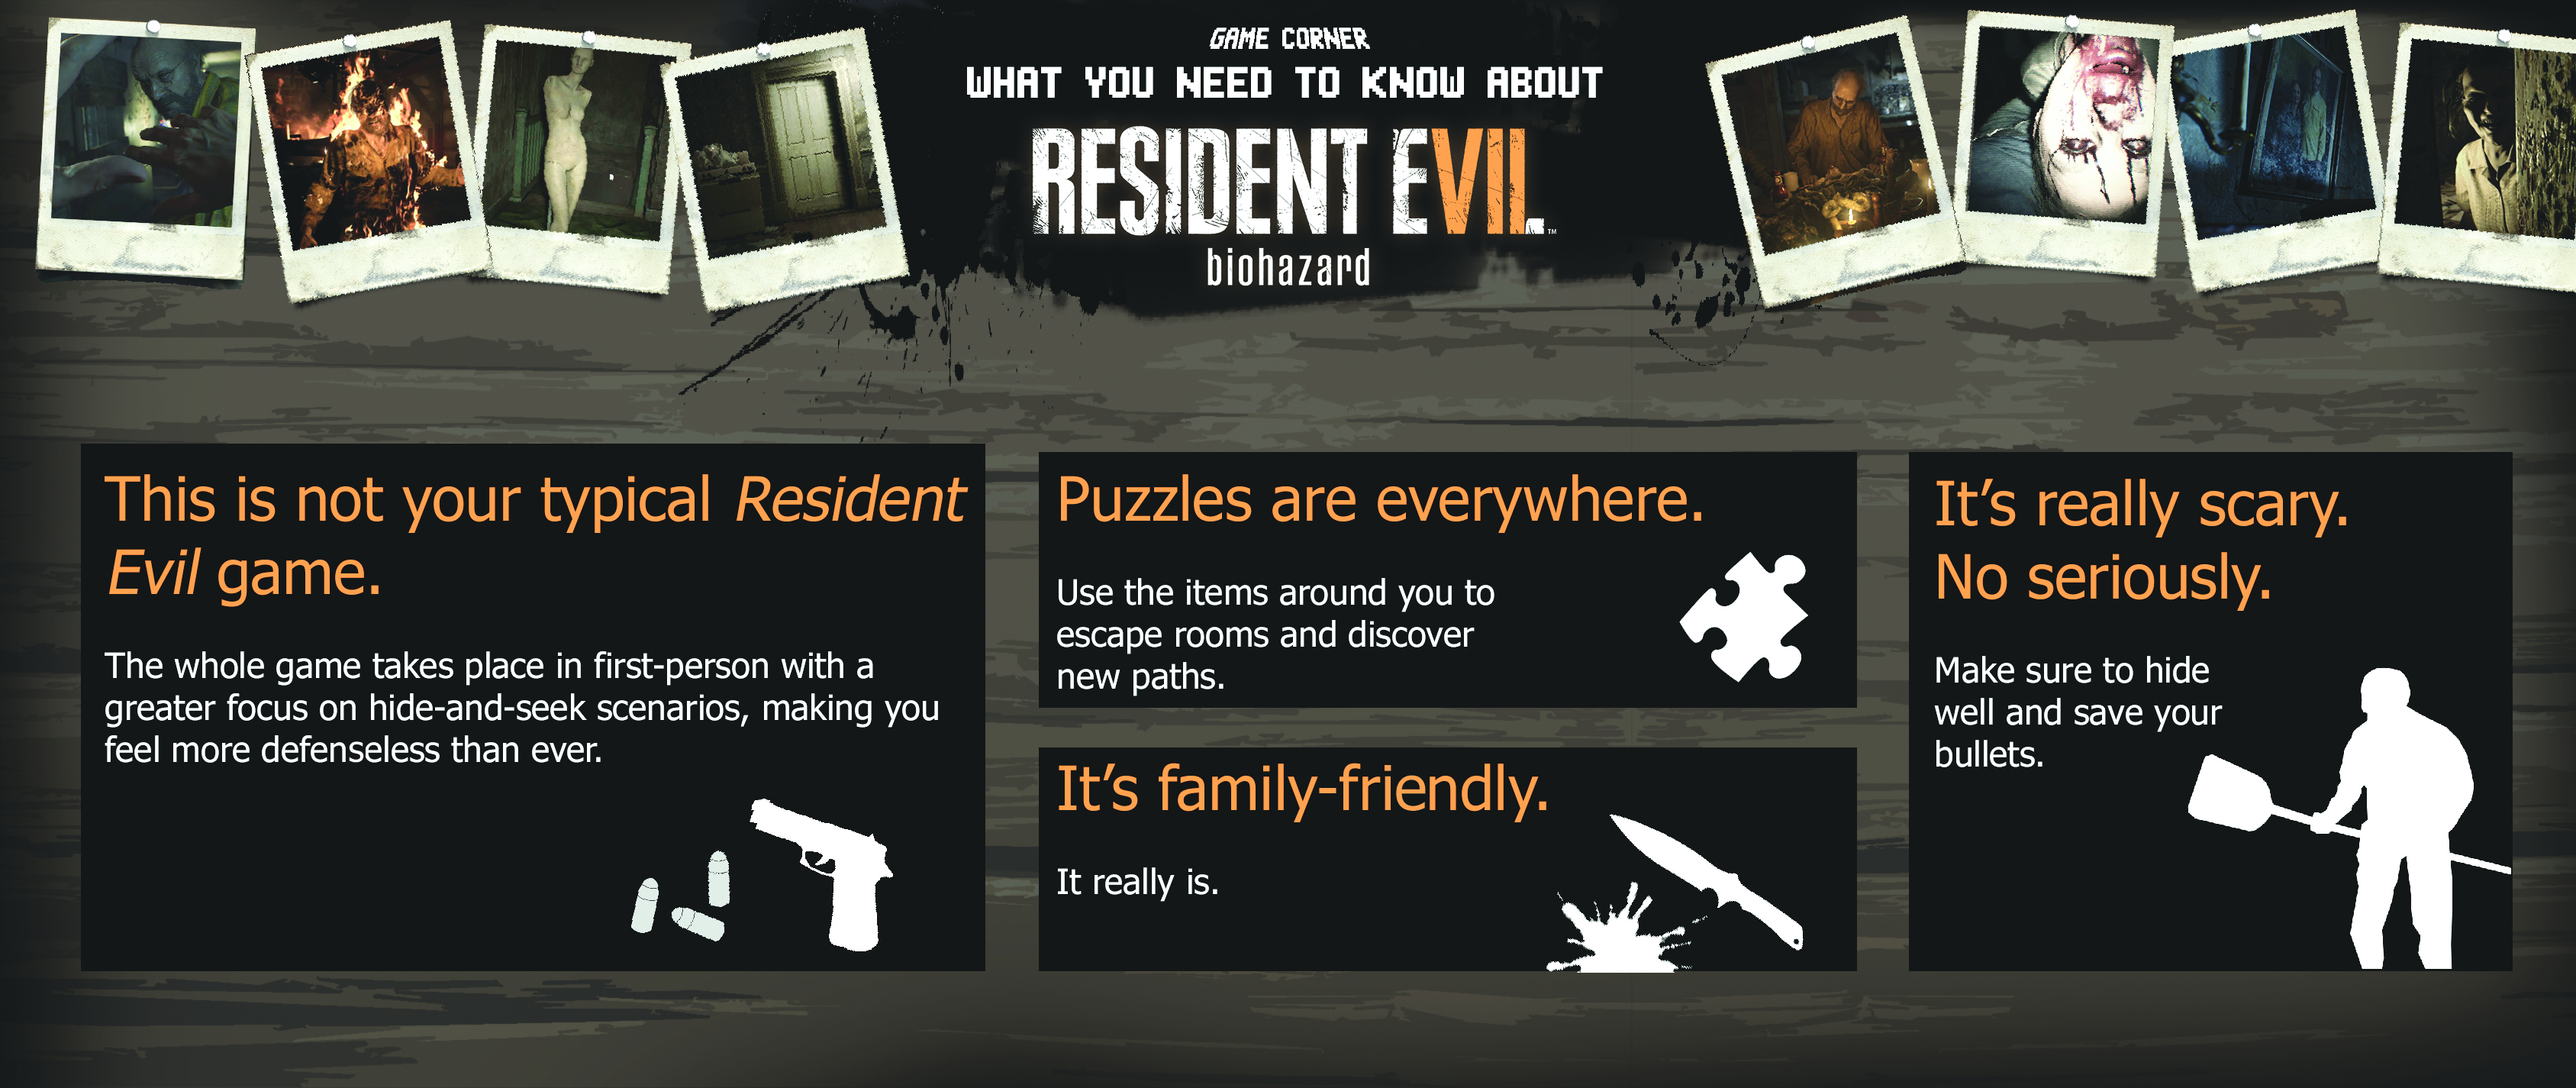 Game Corner: What you need to know about Resident Evil 7